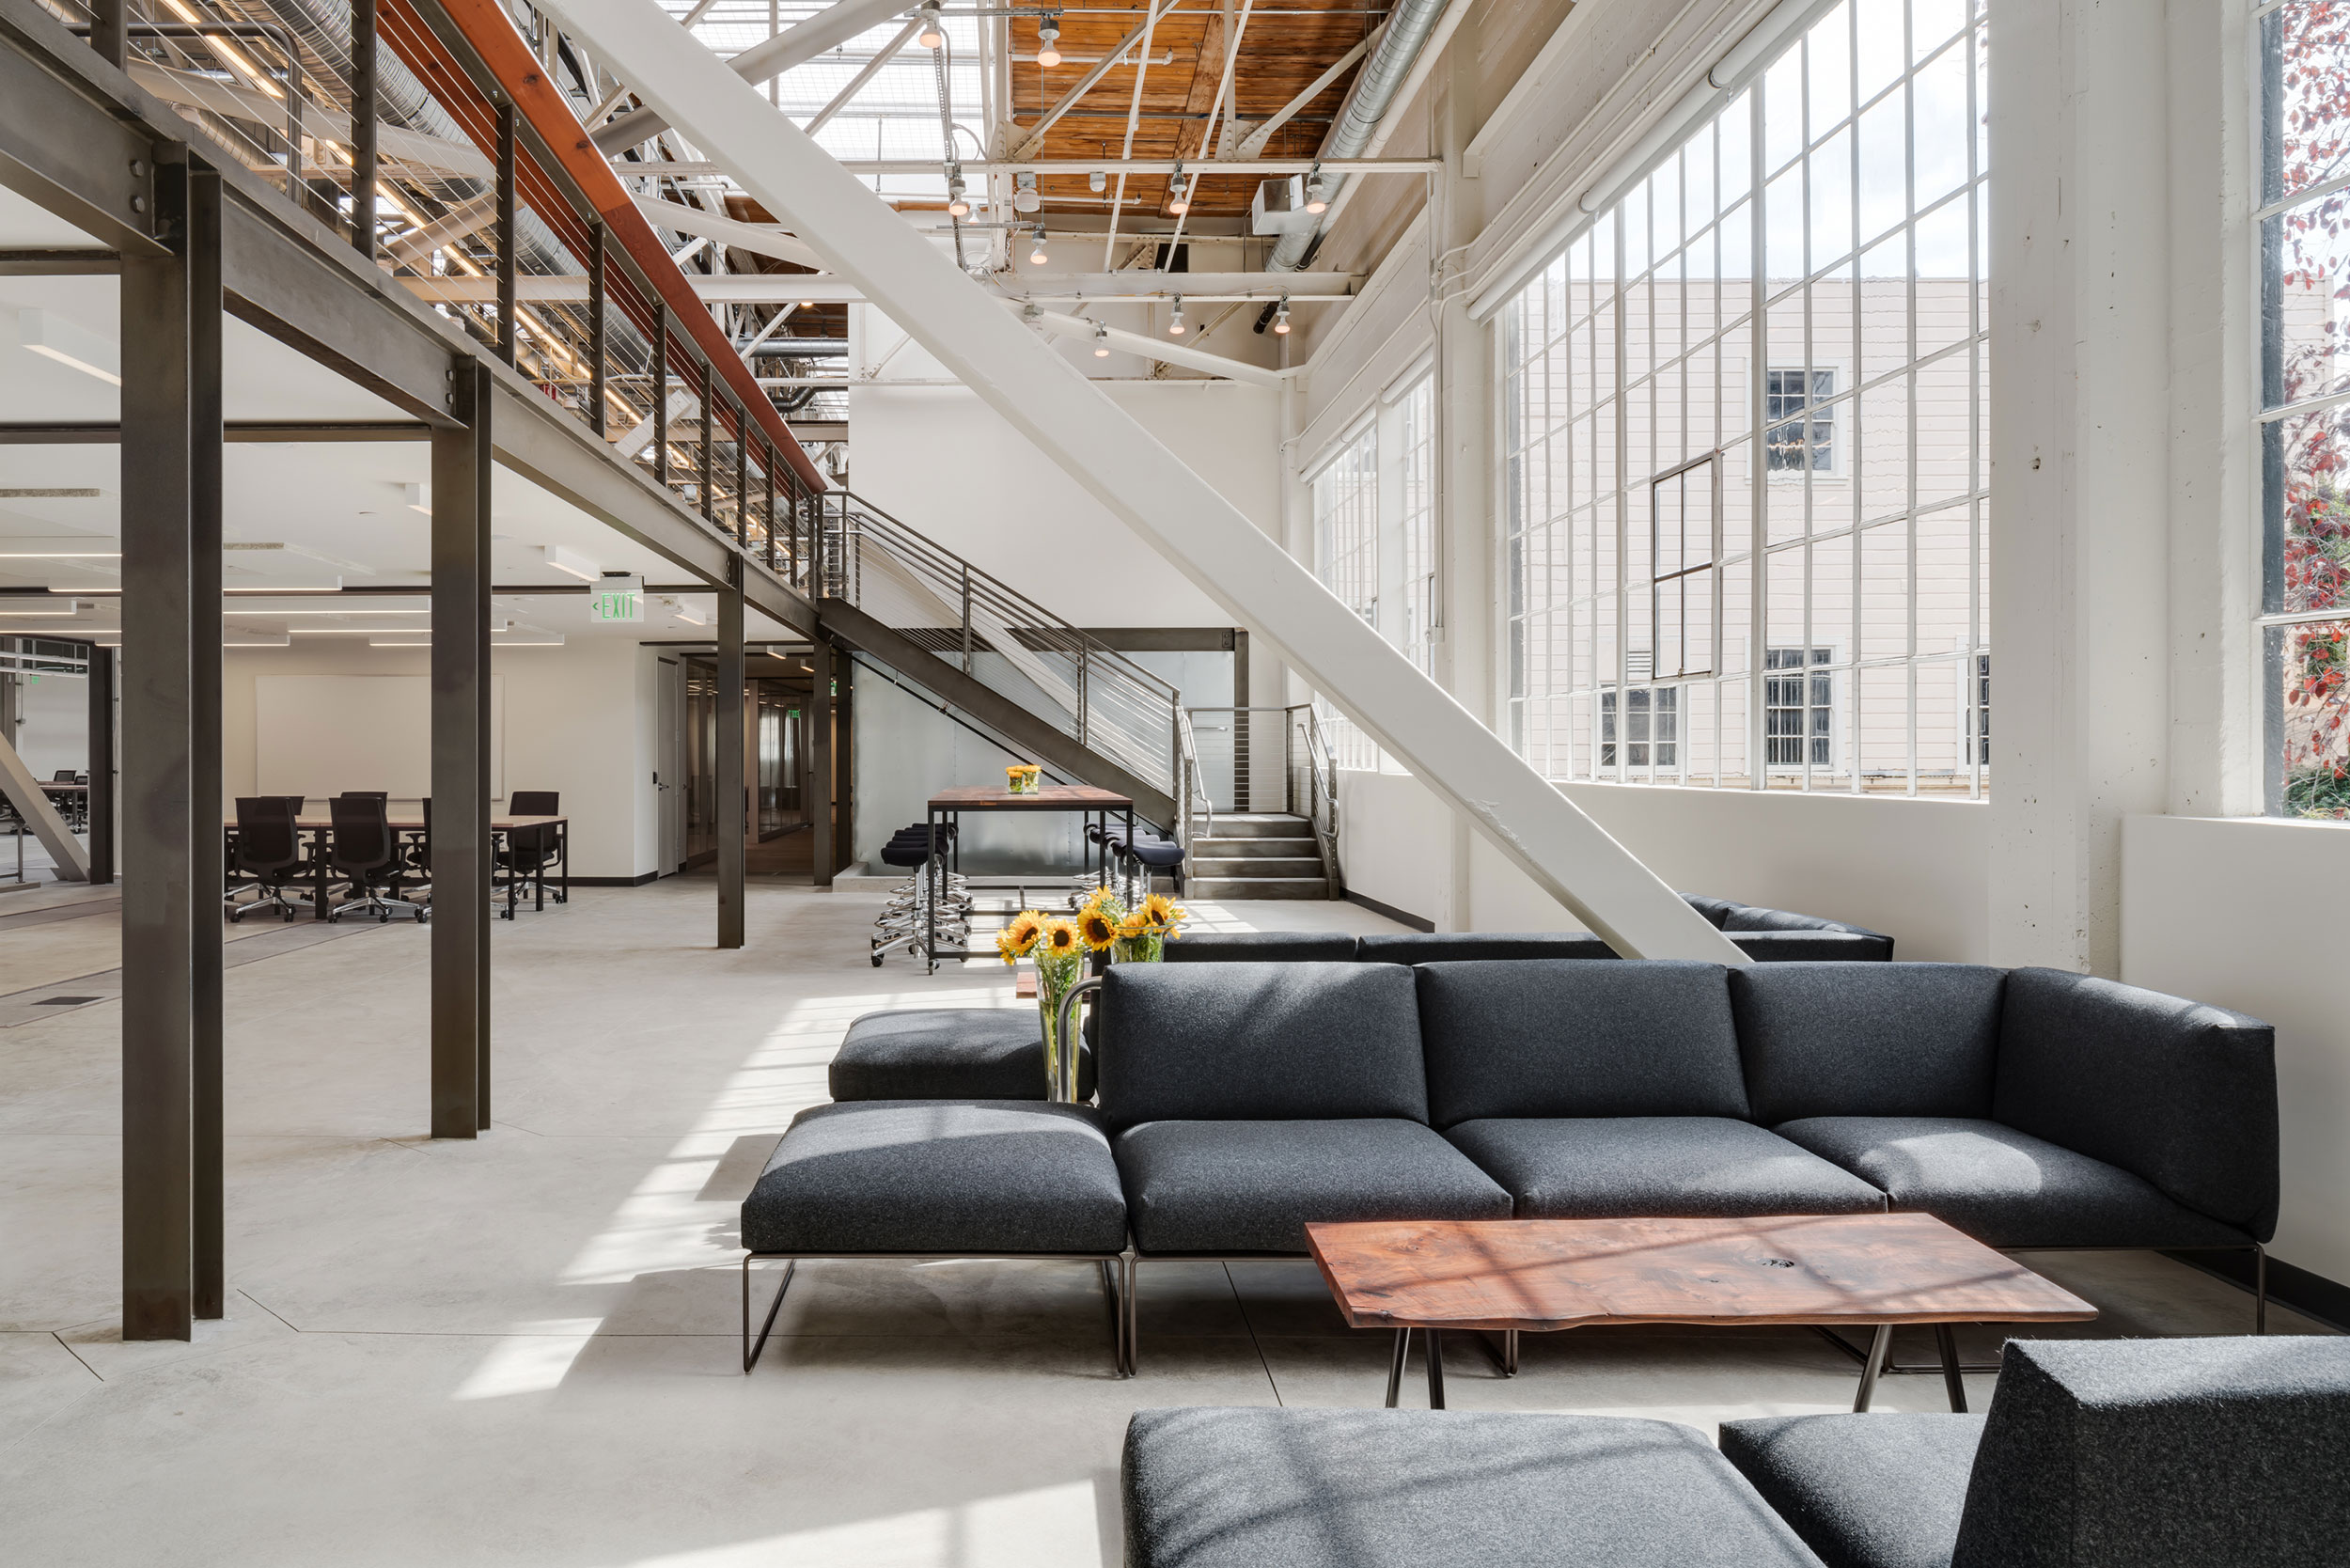 San Francisco Workplace, Office, Adaptive Reuse, Tech Company, Cafe, Natural Light, Natural Materials